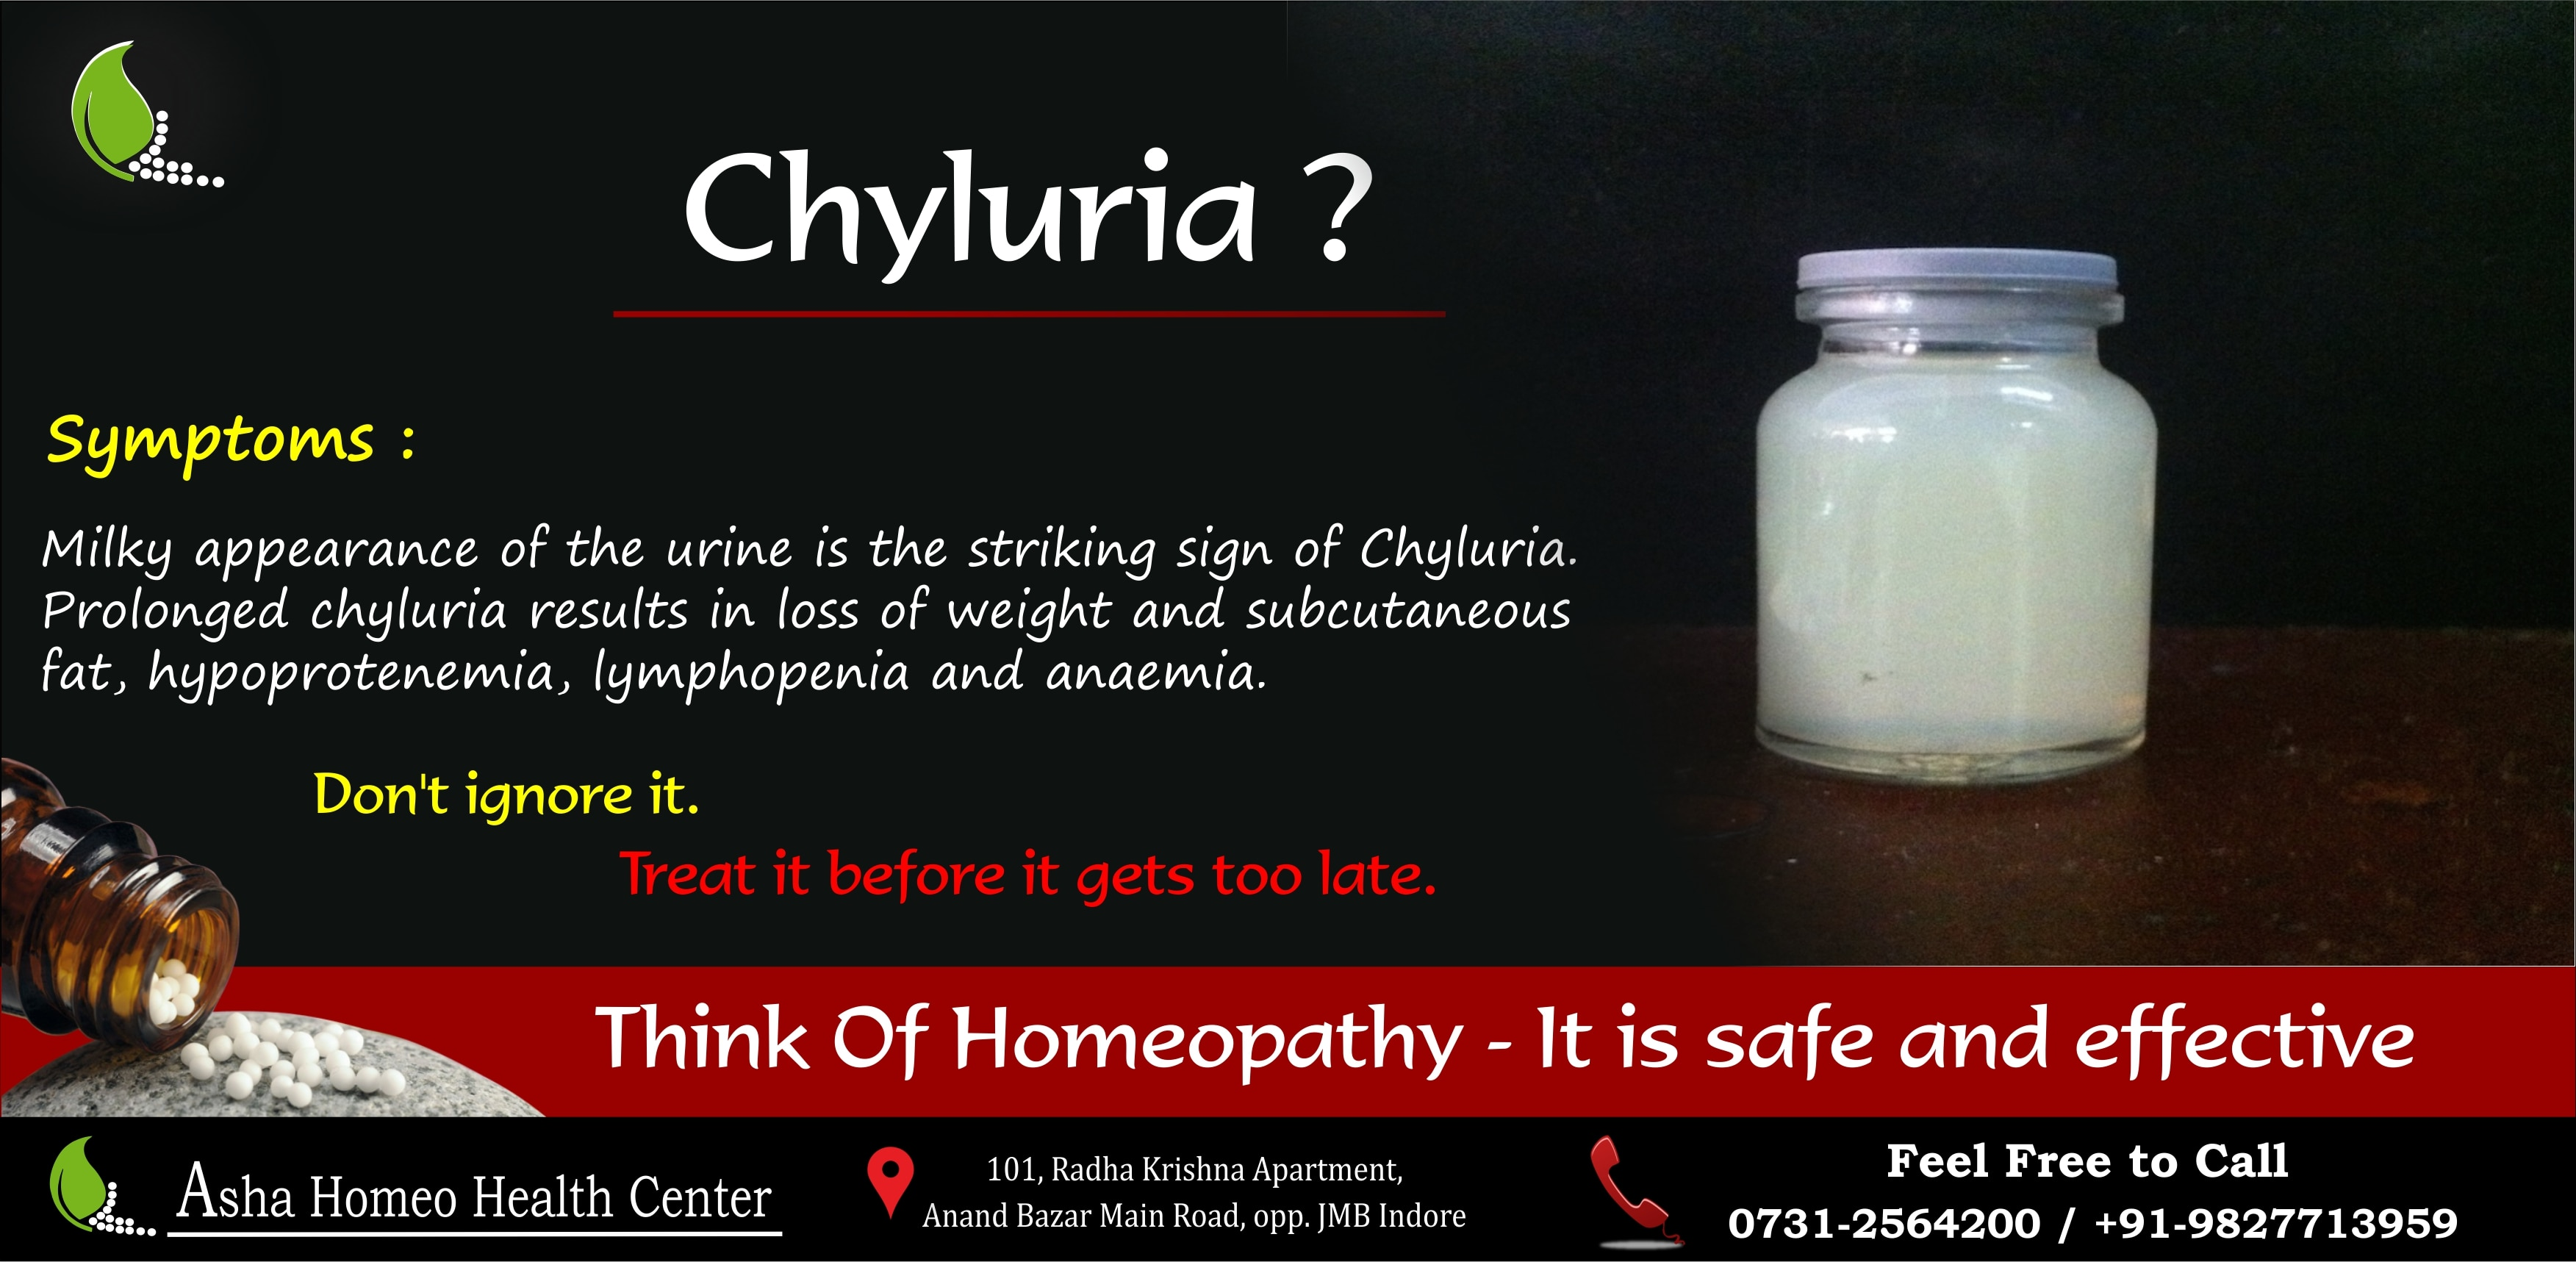 Chyluria Definition: Chyluria is a morbid condition in which